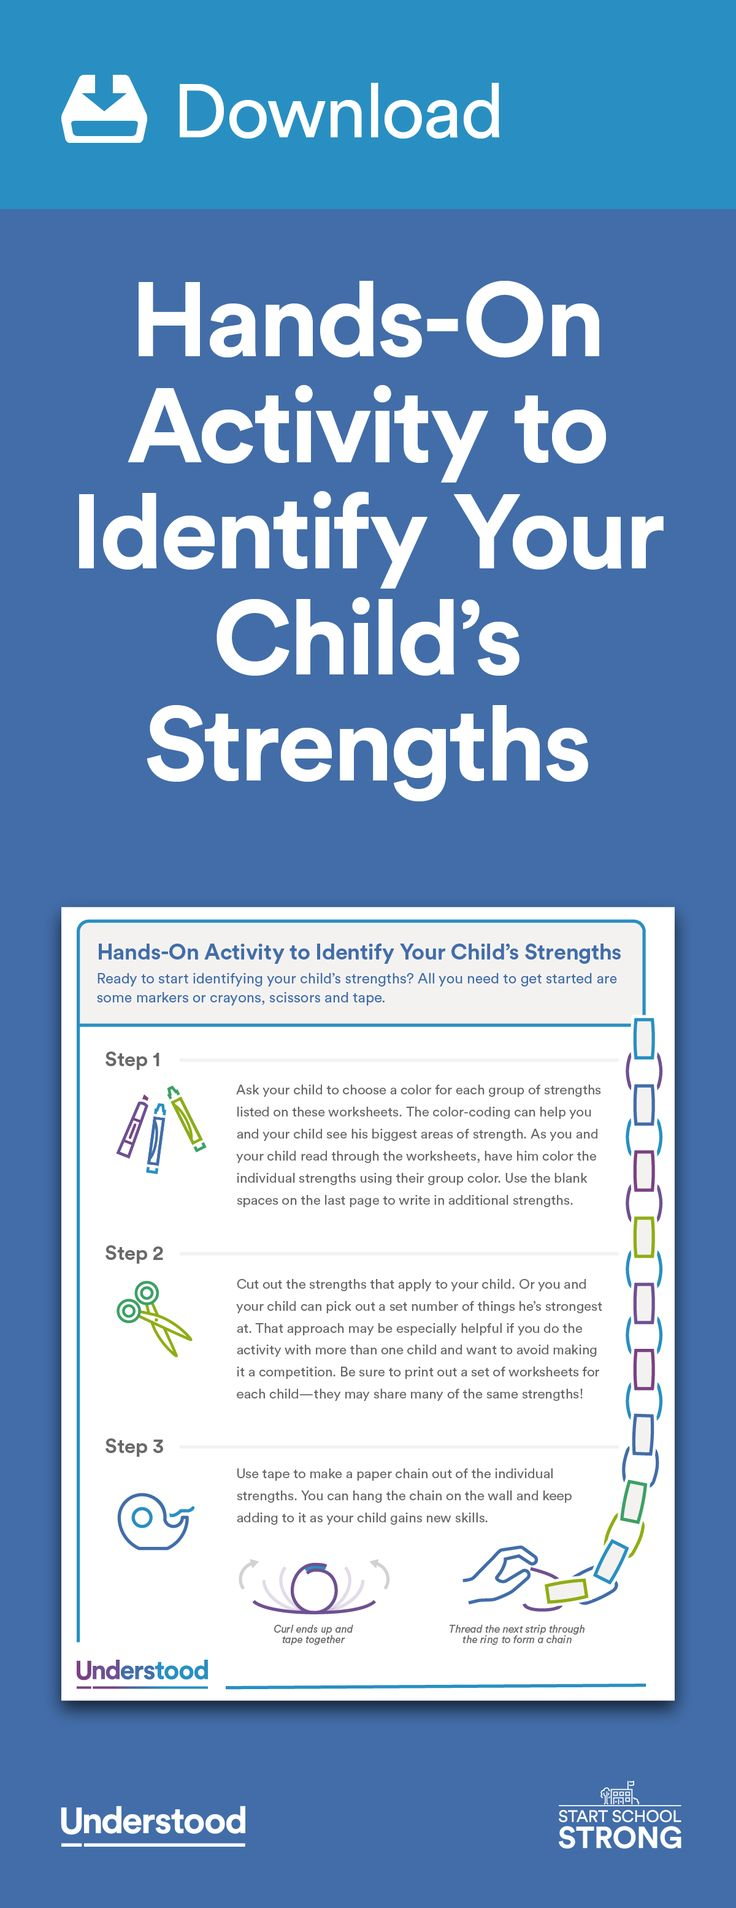 best images about back to school teaching hands on activity to identify your child s strengths